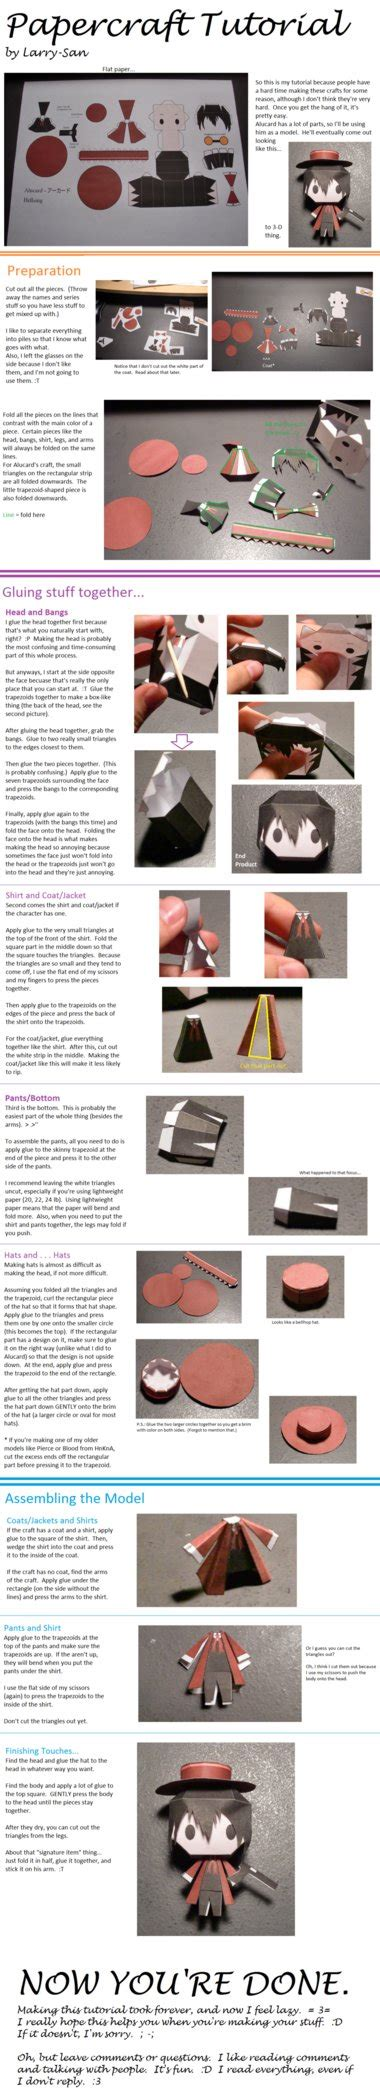 Papercraft Tutorial - chibi papercraft tutorial by larry san on deviantart